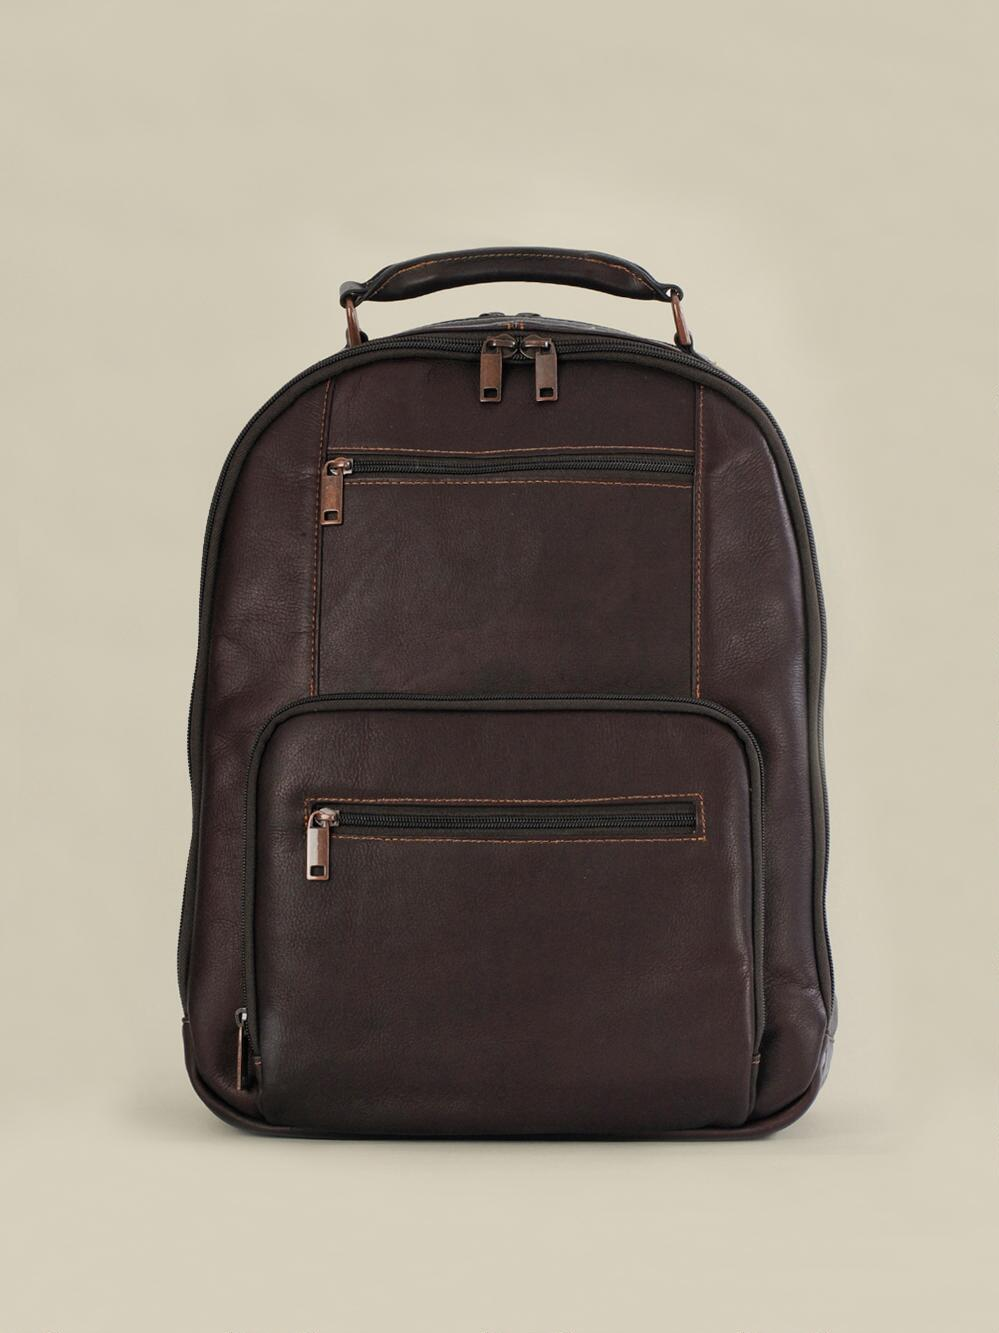 Wilsons Leather Mens, Womens Vacqueta Leather Laptop Backpack